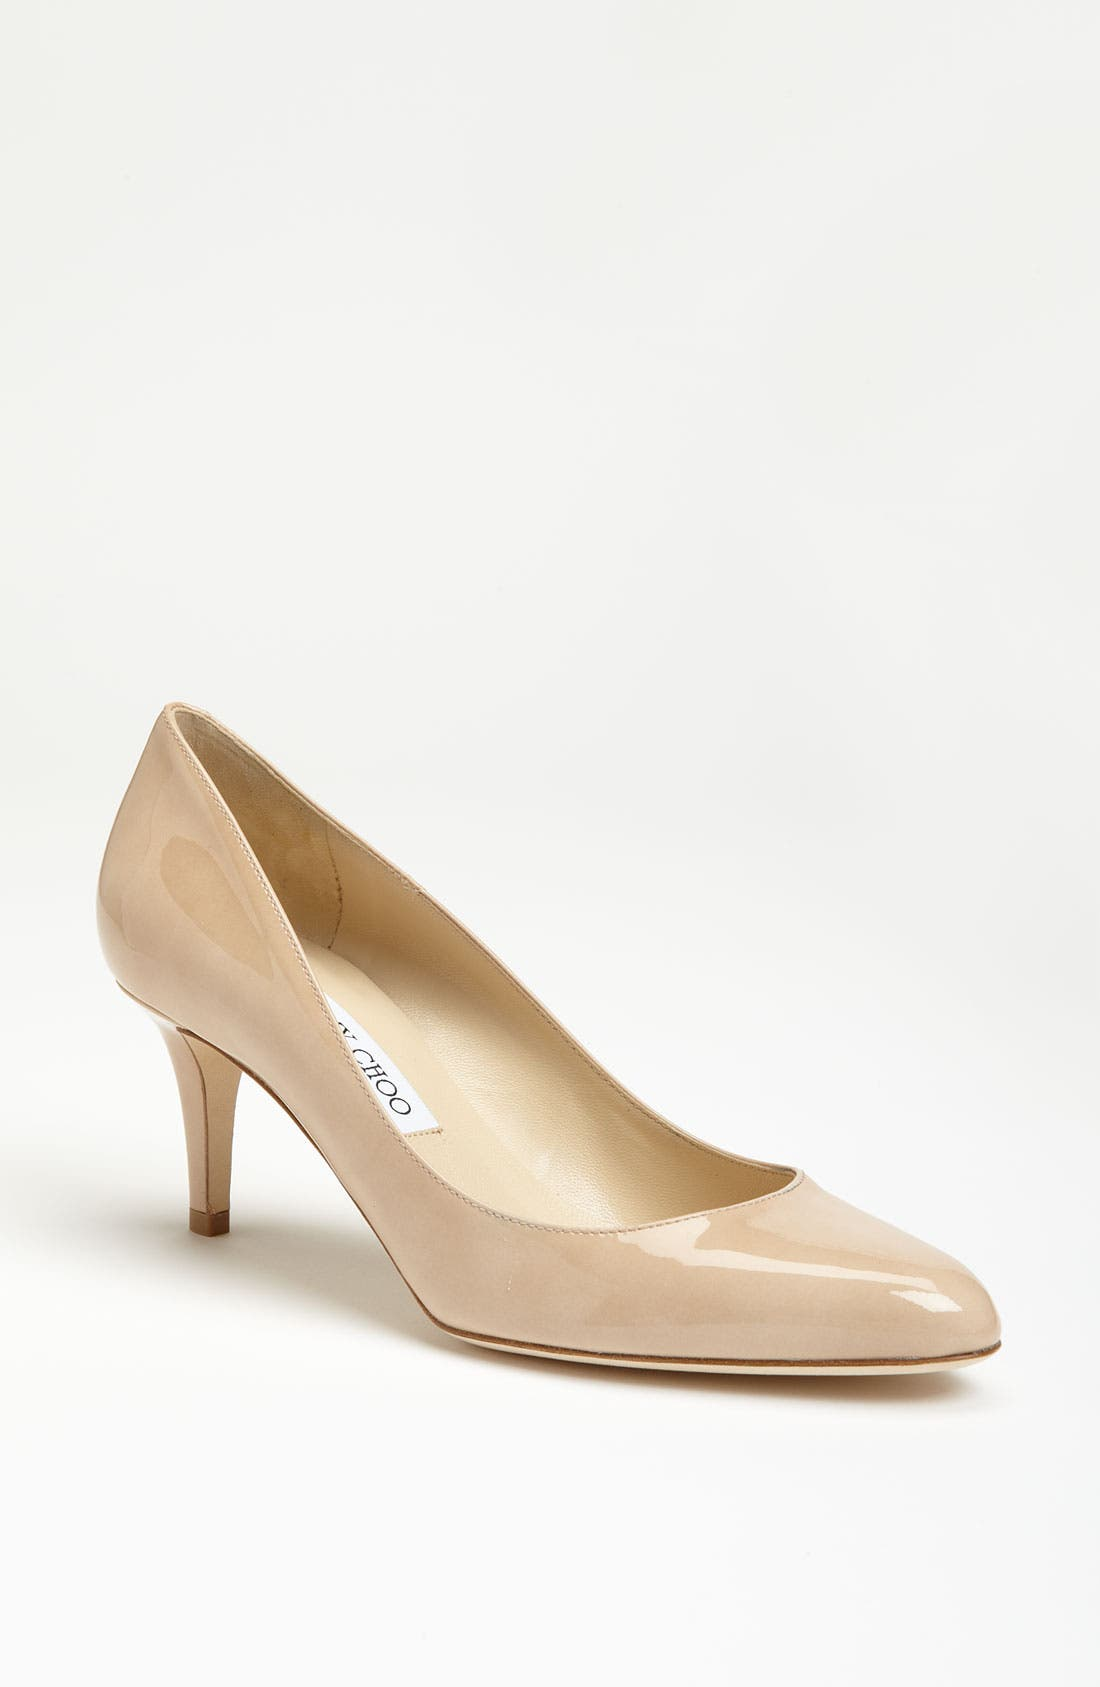 Alternate Image 1 Selected - Jimmy Choo 'Vega' Pump